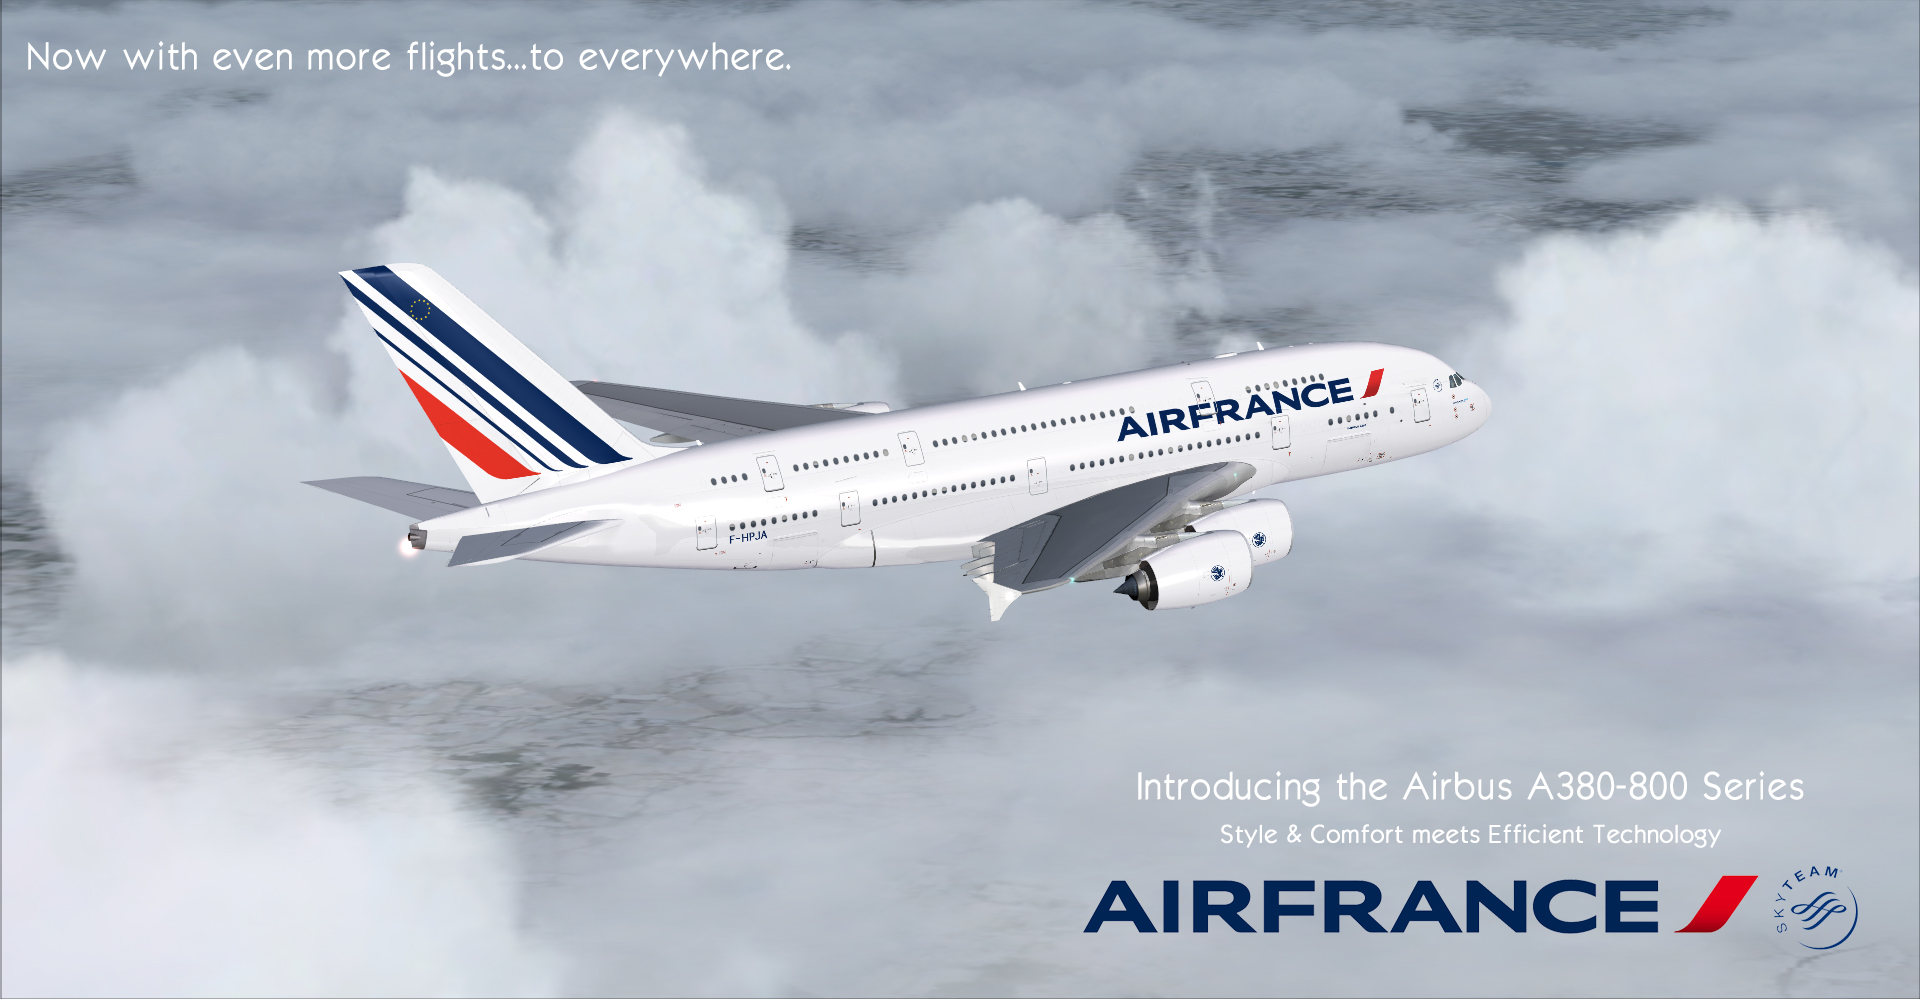 air france concorde wallpaper - photo #19